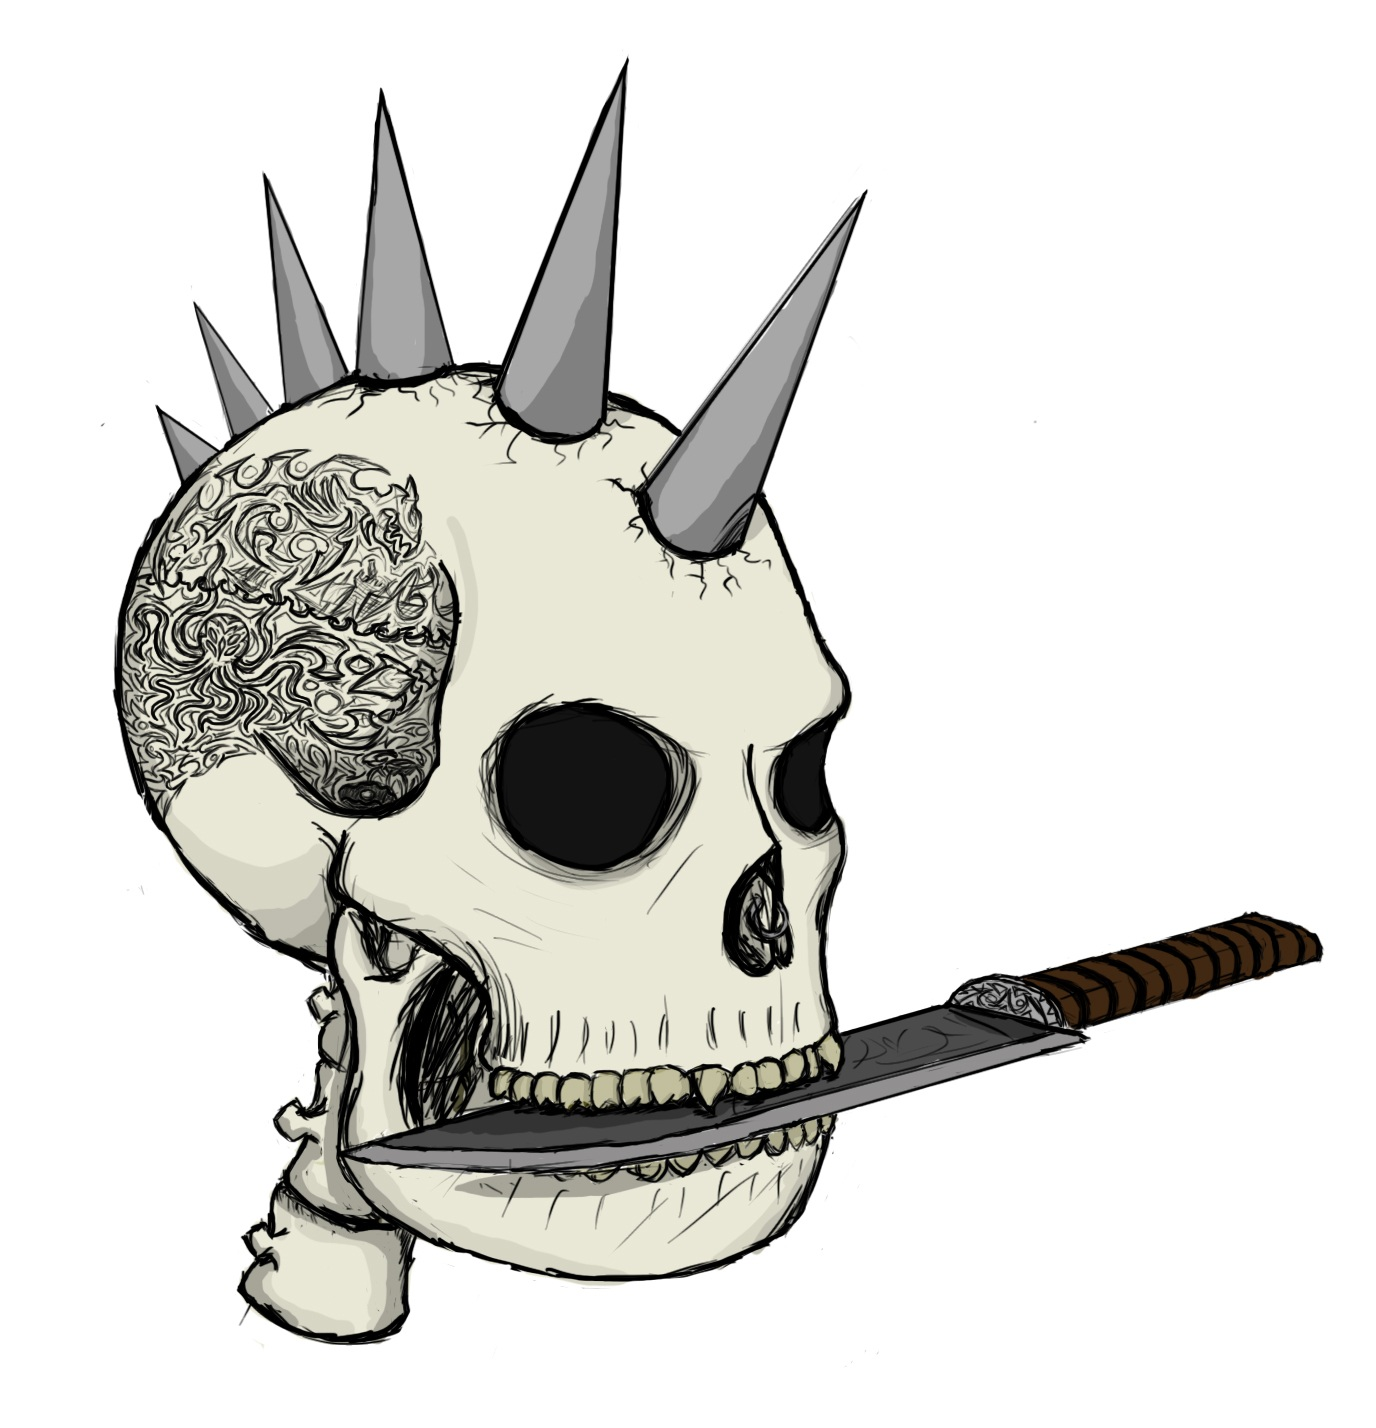 punk pirate skull by limepsycho on deviantart